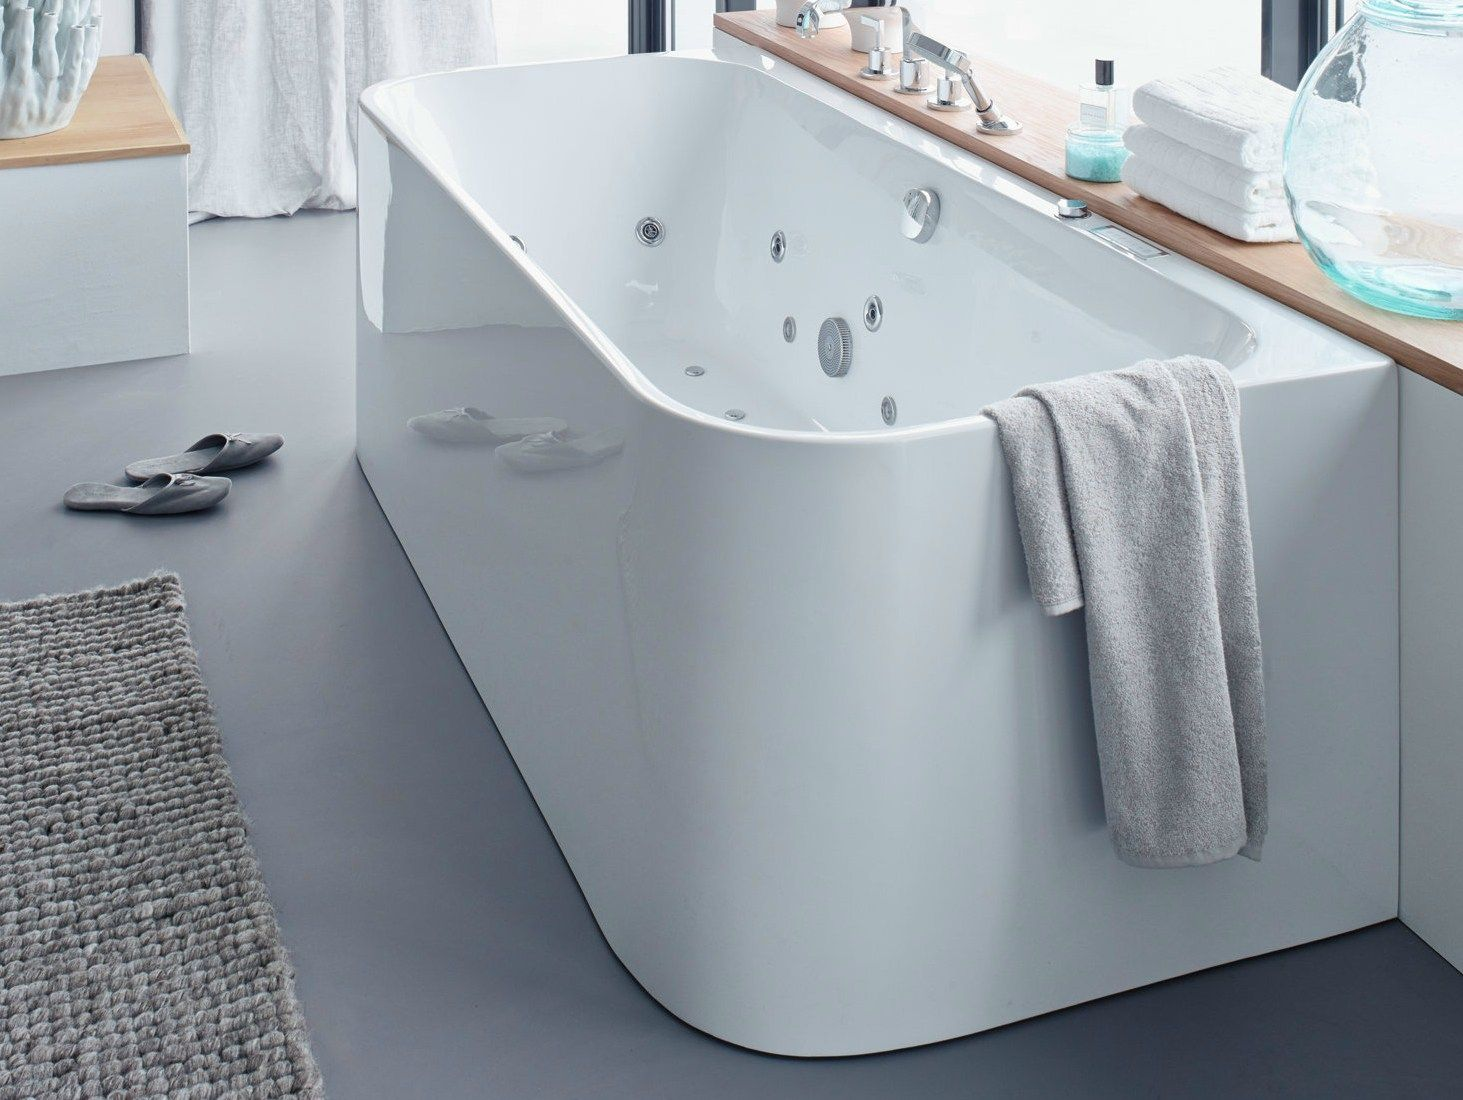 ВАННА HAPPY D.2 КОЛЛЕКЦИЯ HAPPY D.2 BY DURAVIT ITALIA | ДИЗАЙН ...